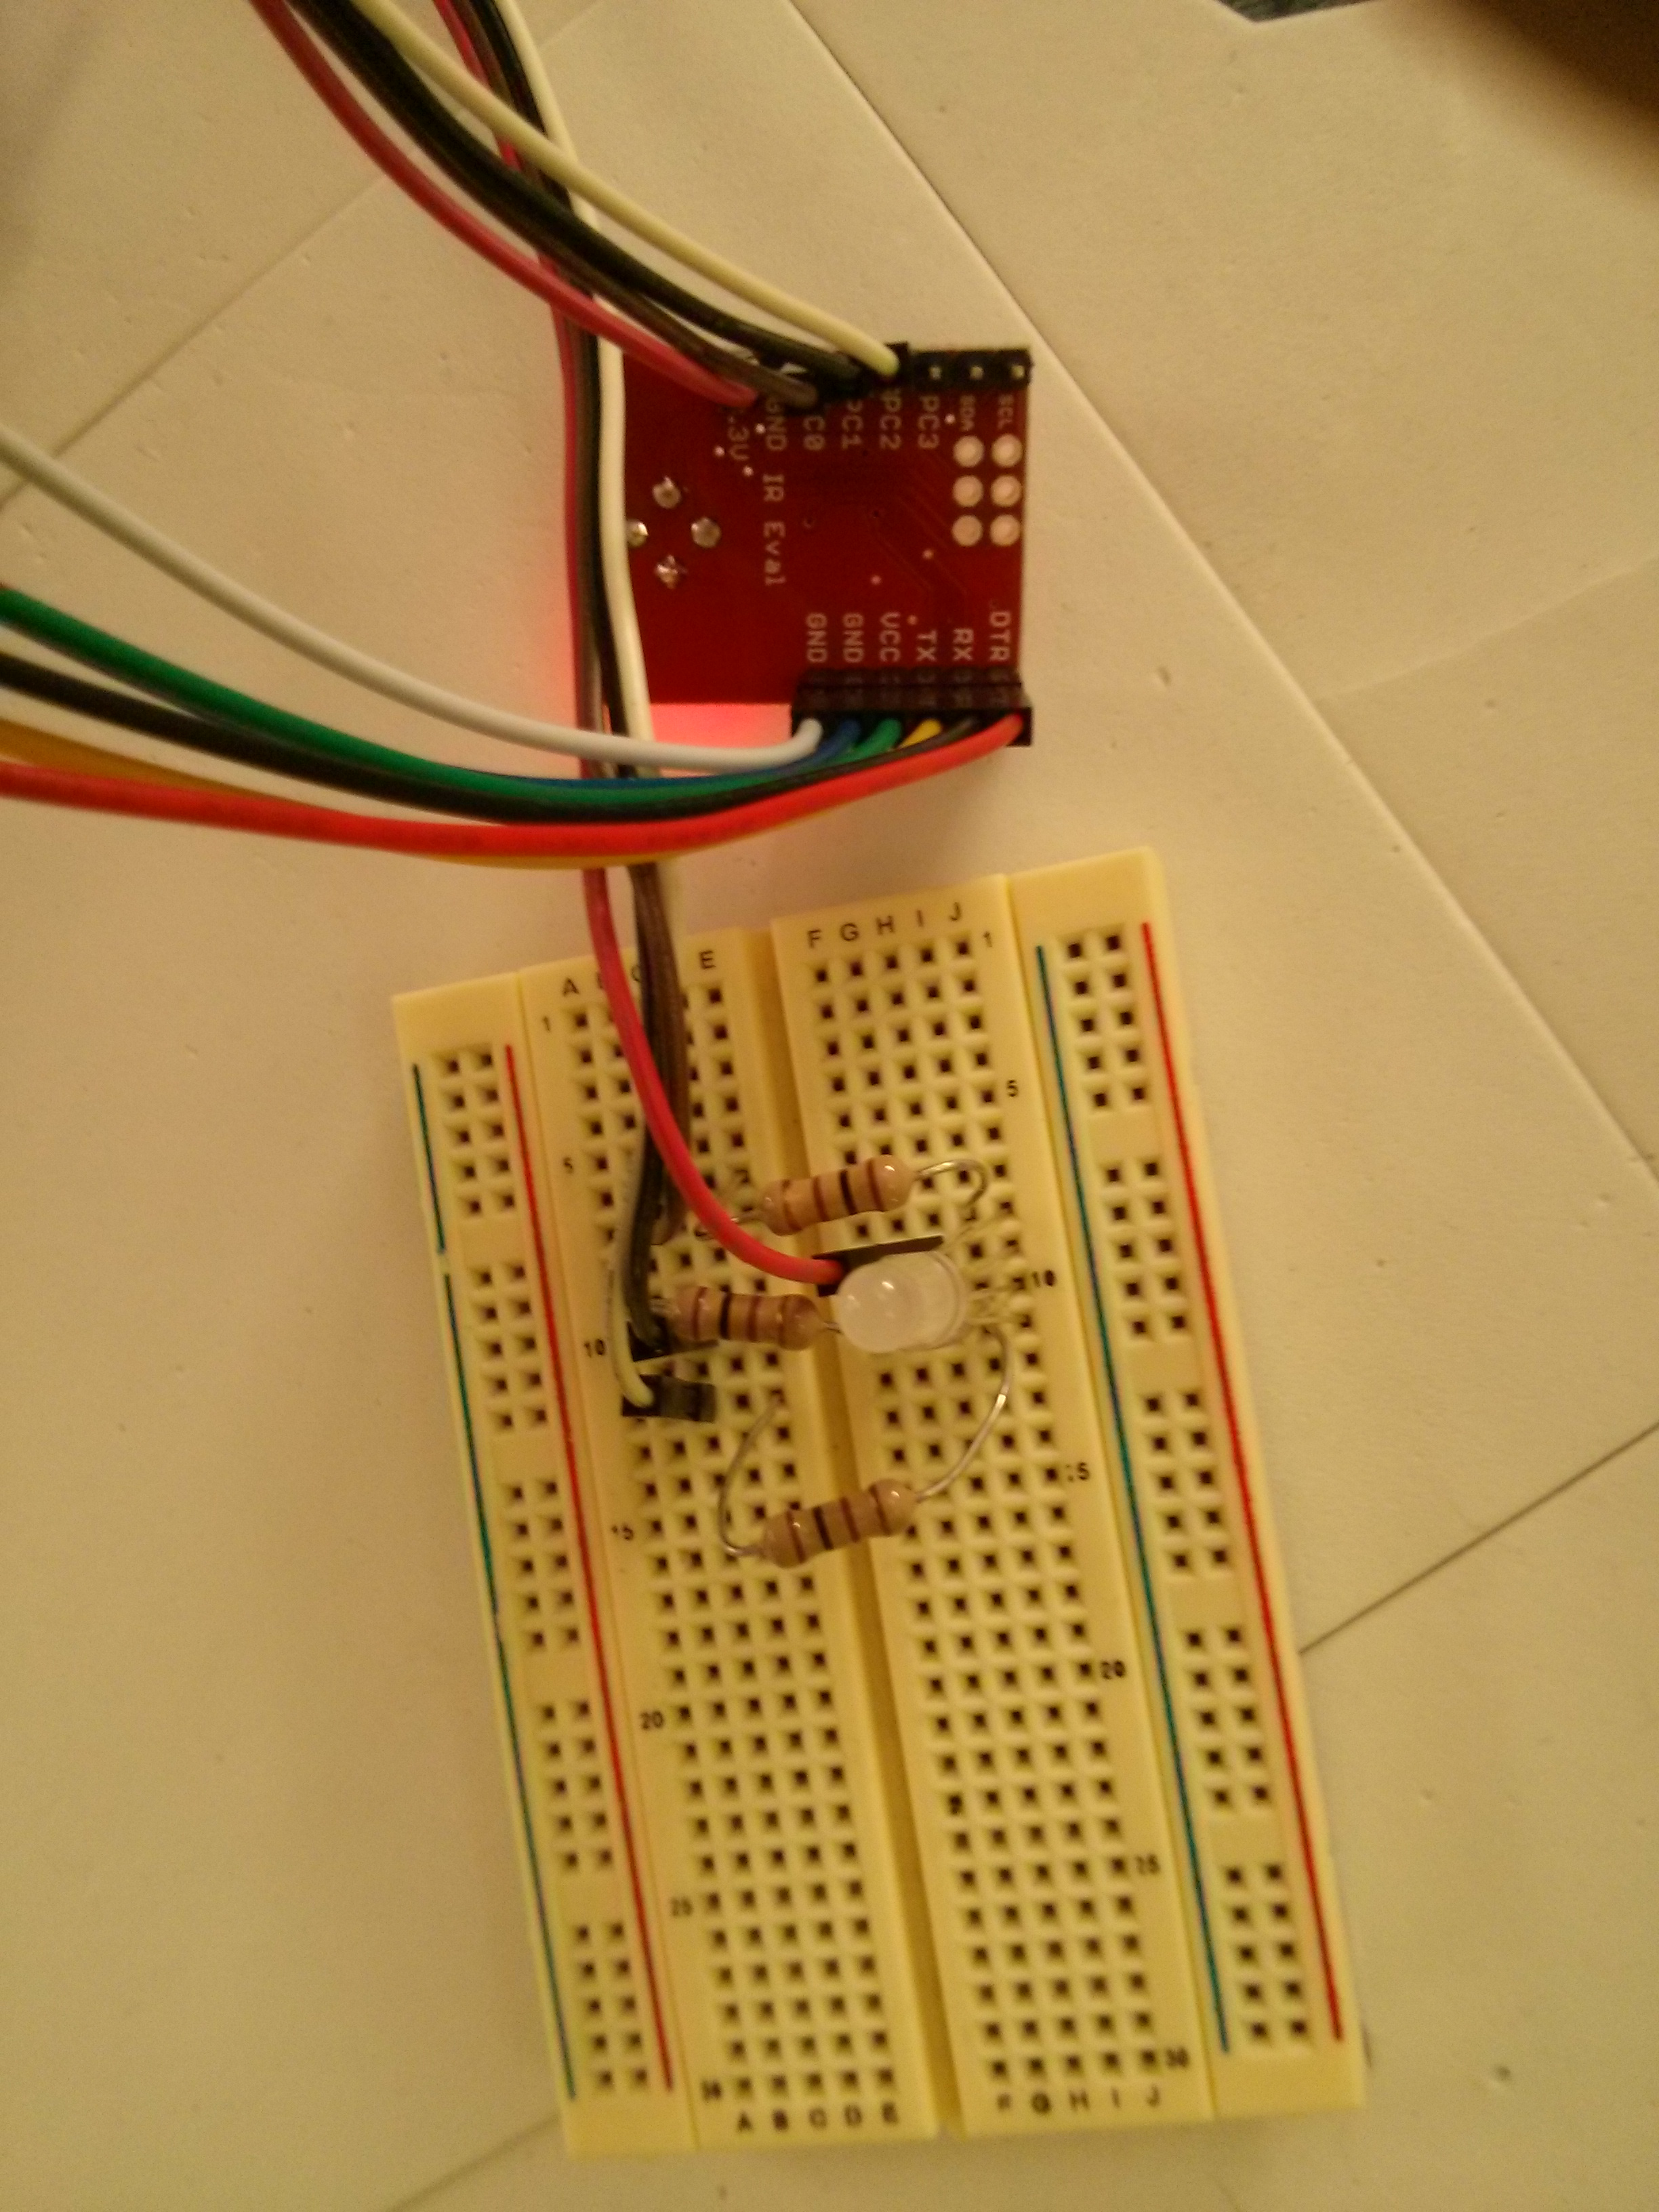 Recent Research Notes On Publiclaborg The Final Open House Reminder News Sparkfun Electronics